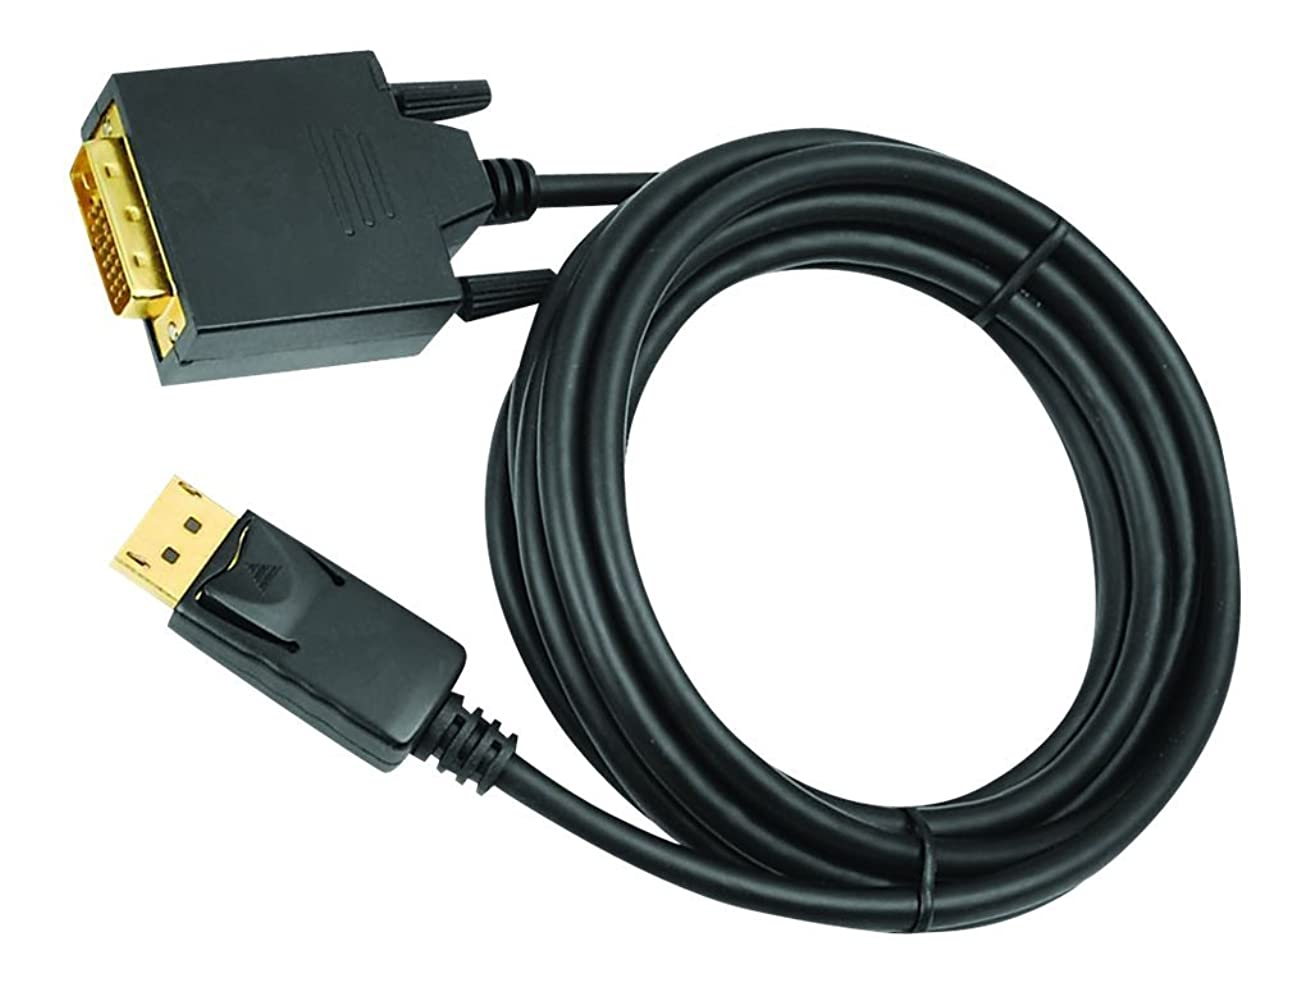 Siig CB-DP1A11-S2 Display Cable, 10', 24+1 Pin Digital DVI (M) to 20 Pin DisplayPort (M), Black